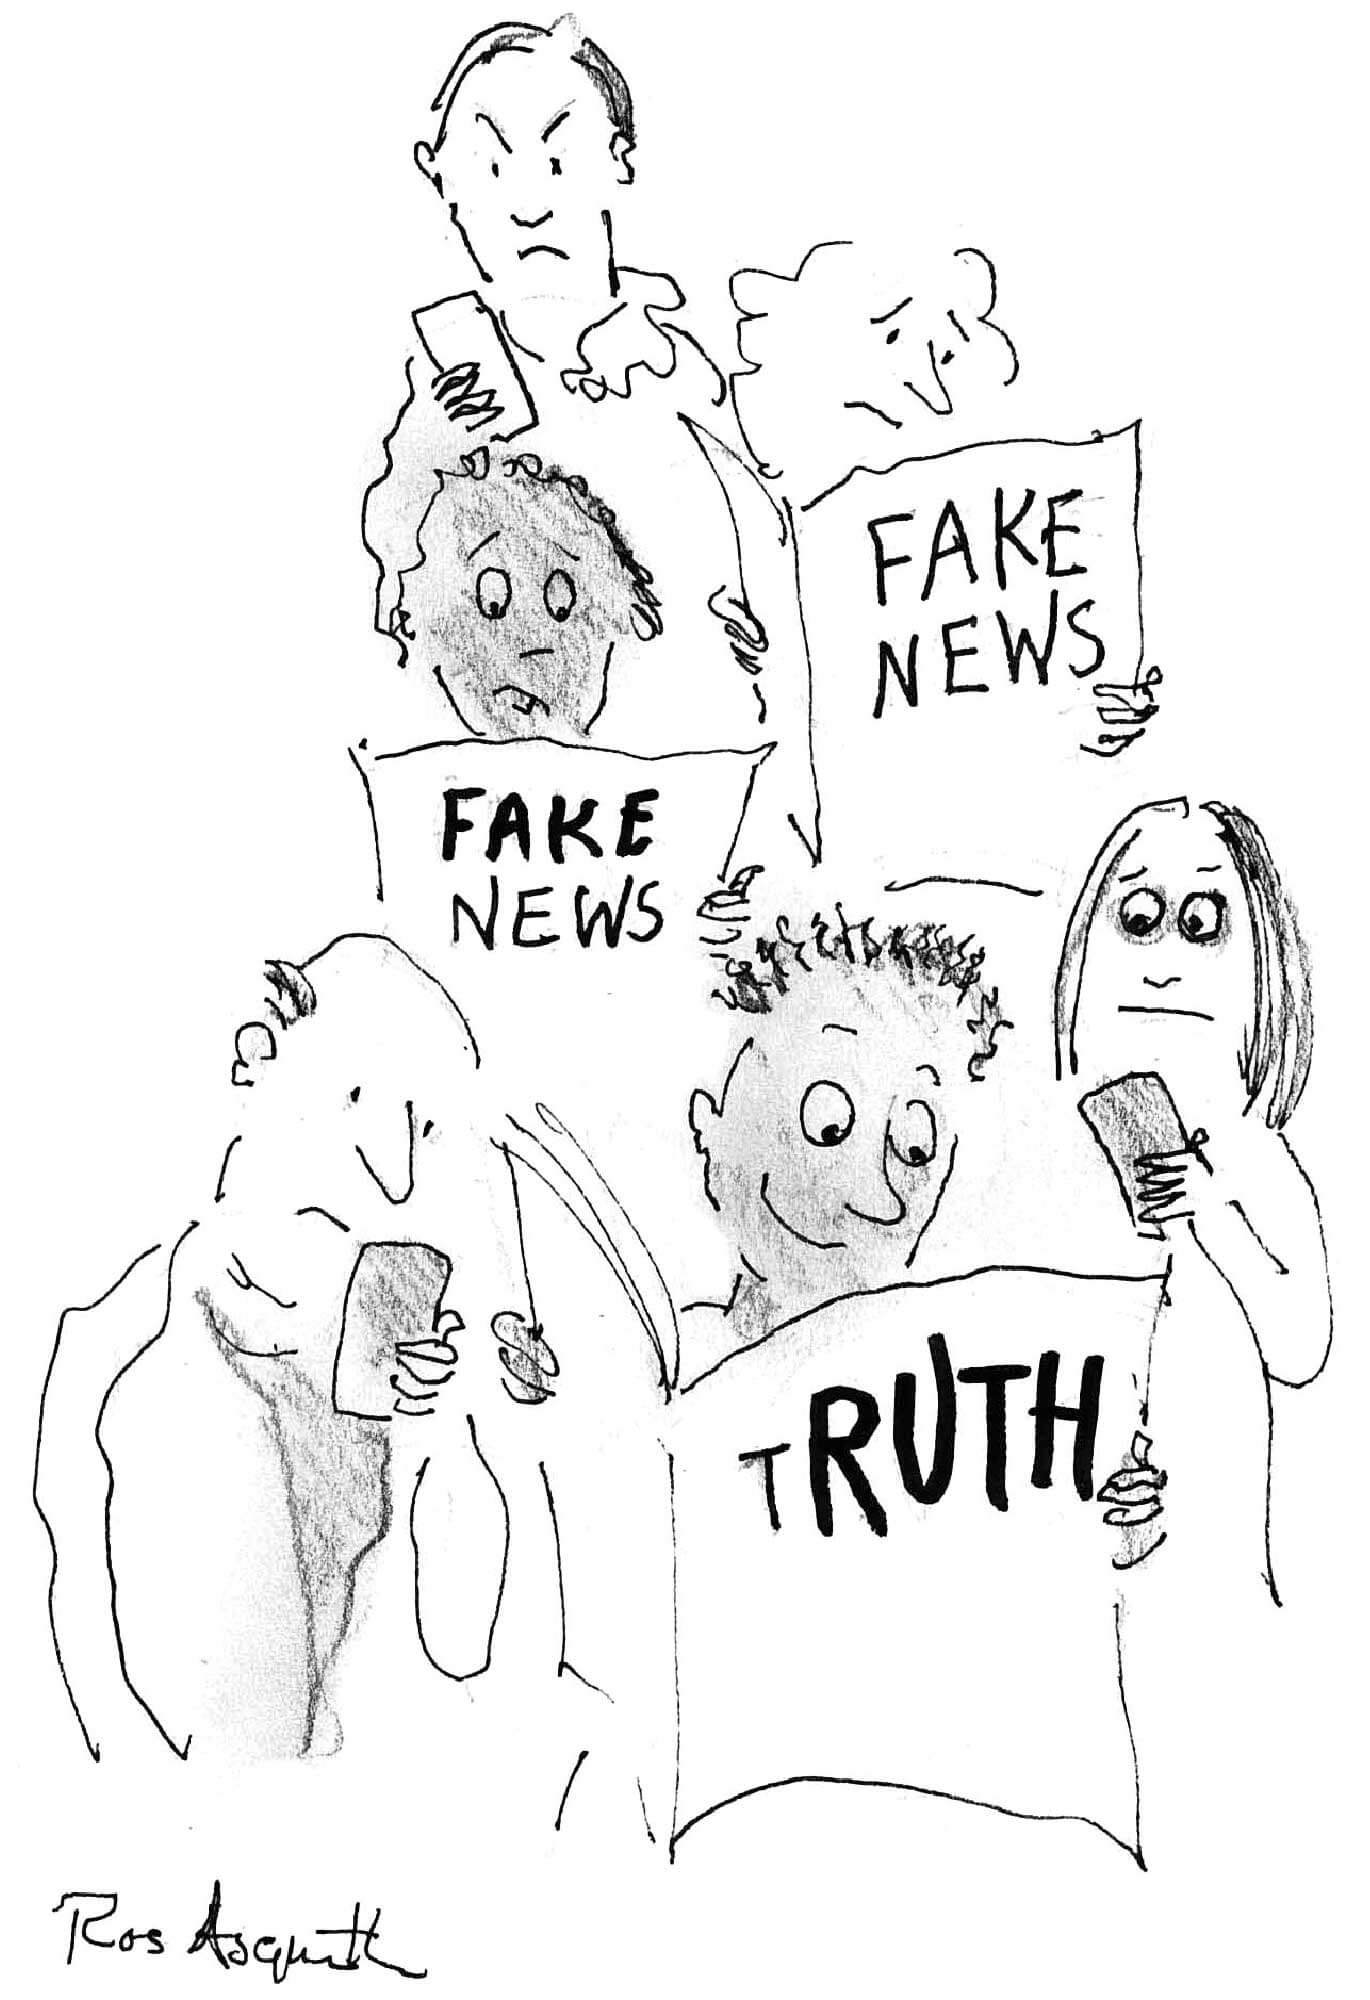 Ruth Whitehead in the Media - illustration of people reading news